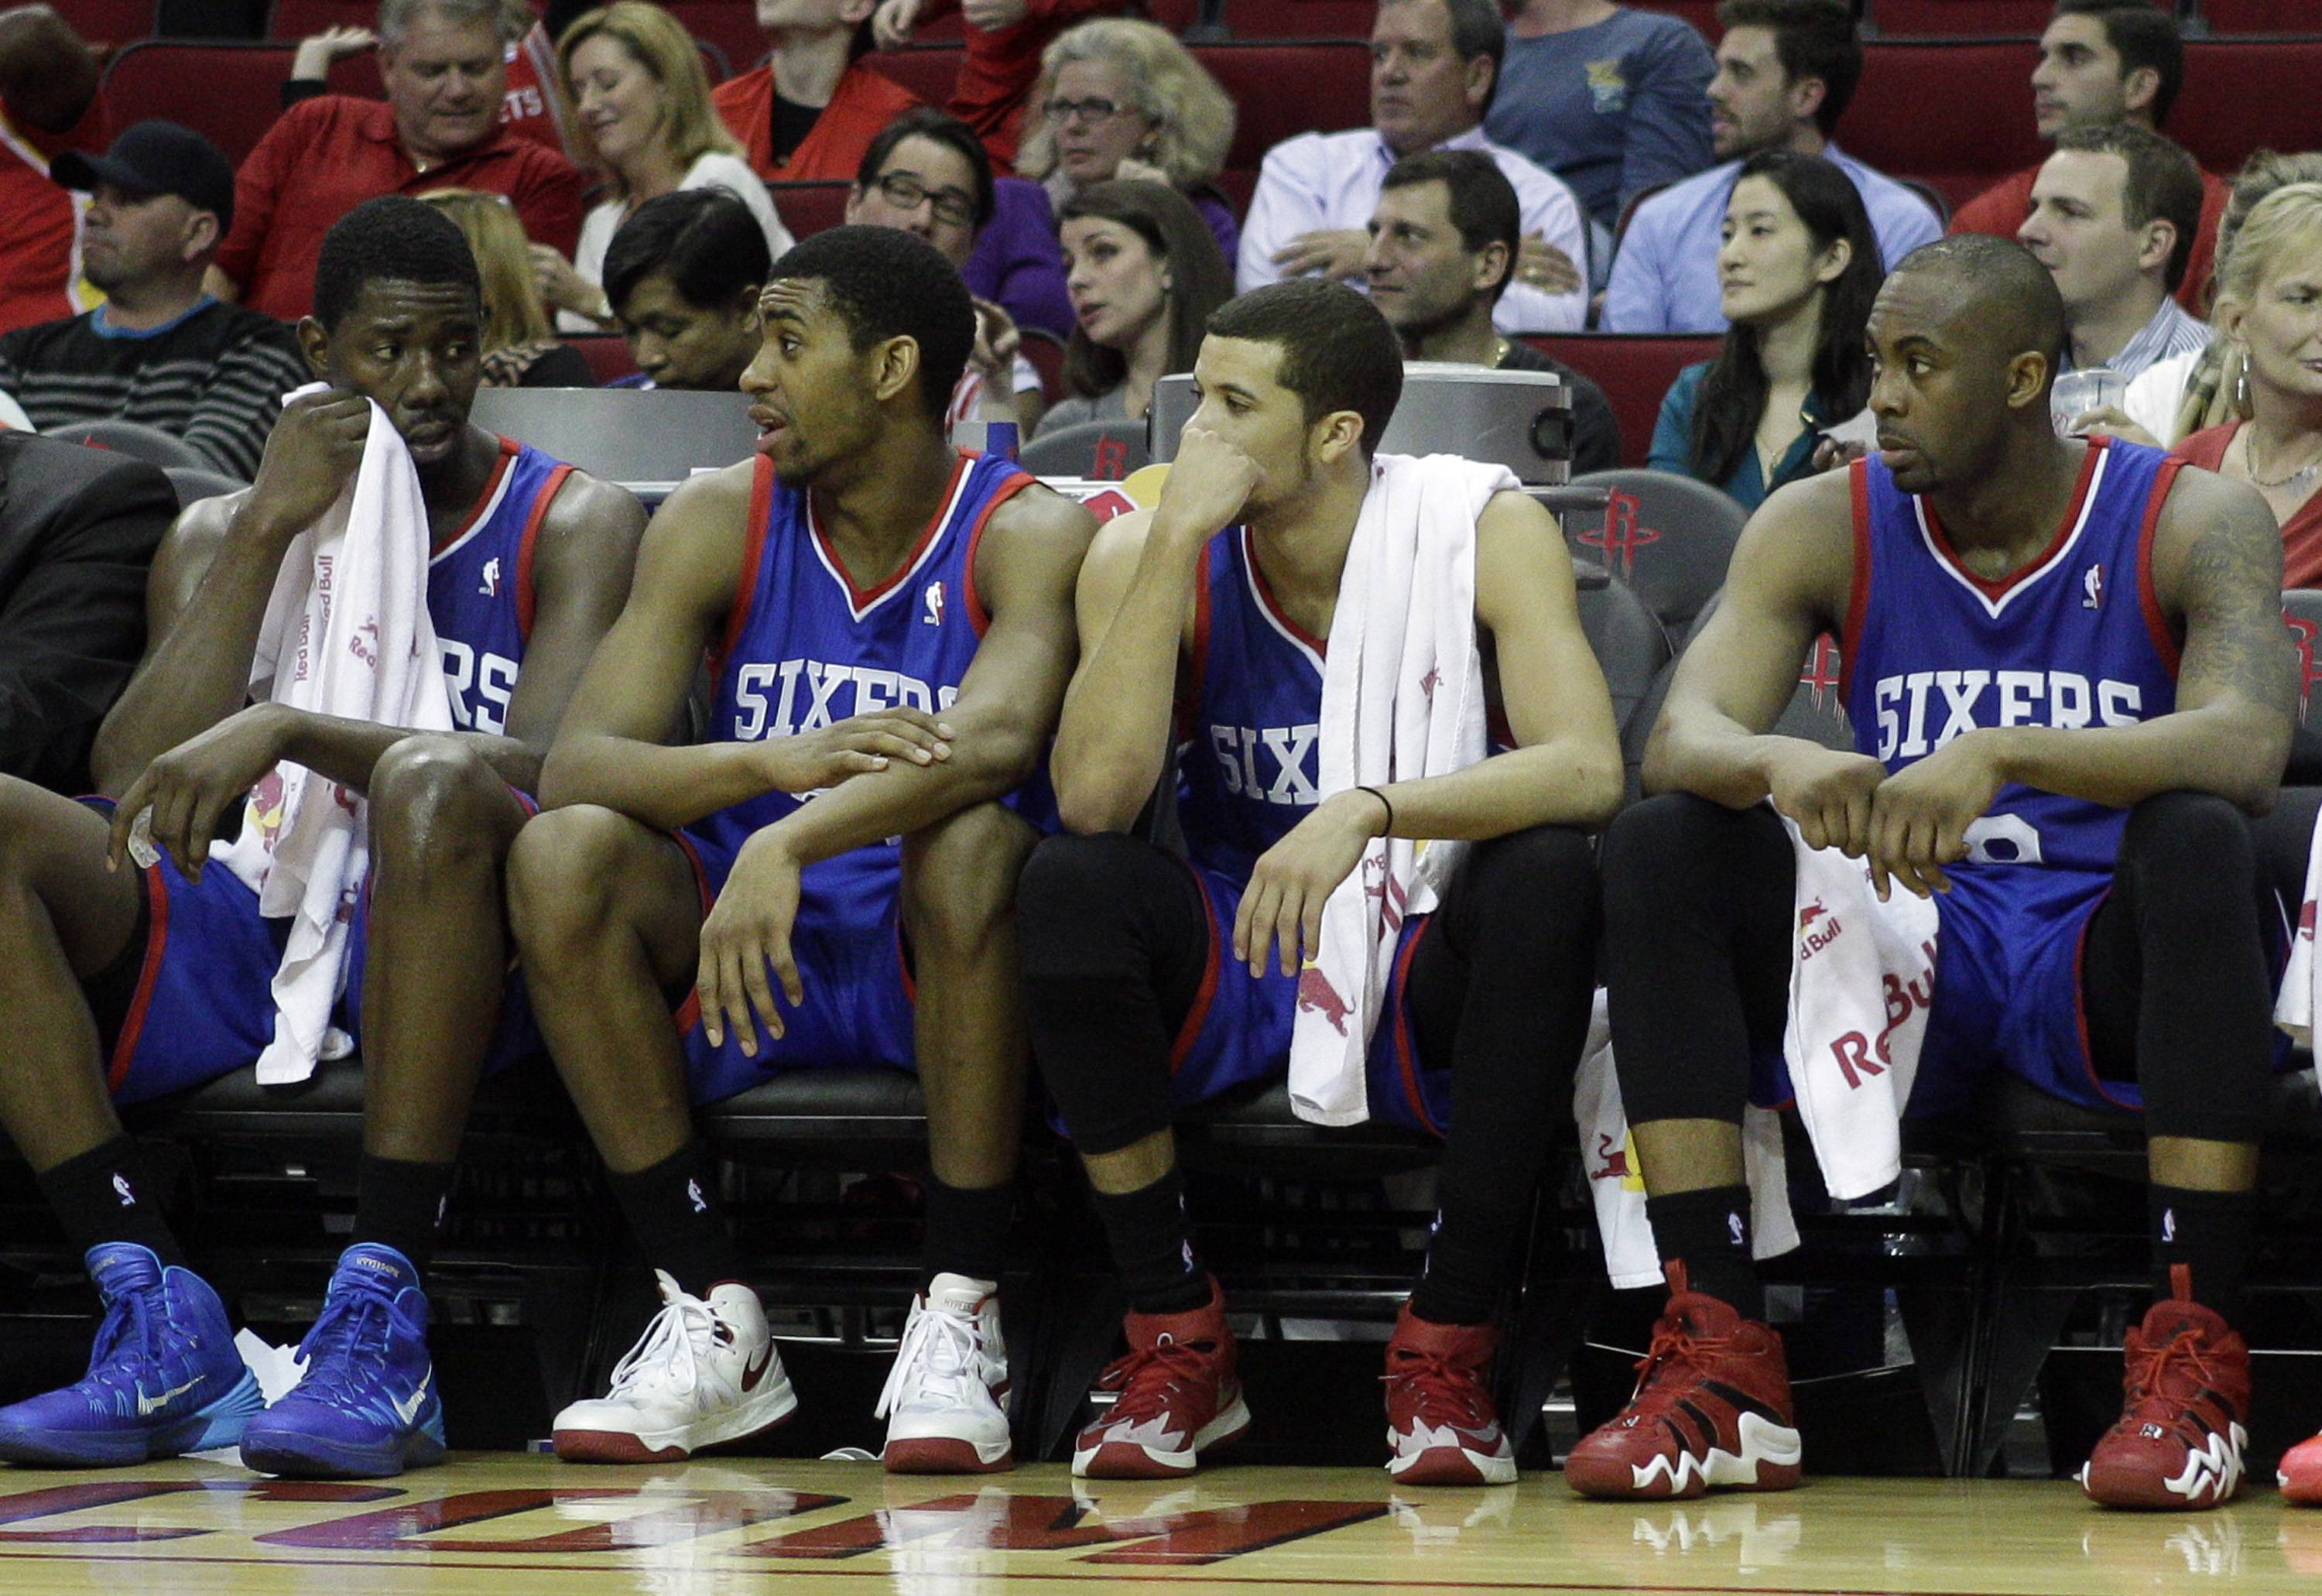 From left to right, Philadelphia 76ers' Henry Sims, Hollis Thompson, Michael Carter-Williams and James Anderson watch the final minutes during the second half of an NBA basketball game against the Houston Rockets, Thursday, March 27, 2014, in Houston. Houston won 120-98. (AP Photo/Bob Levey)